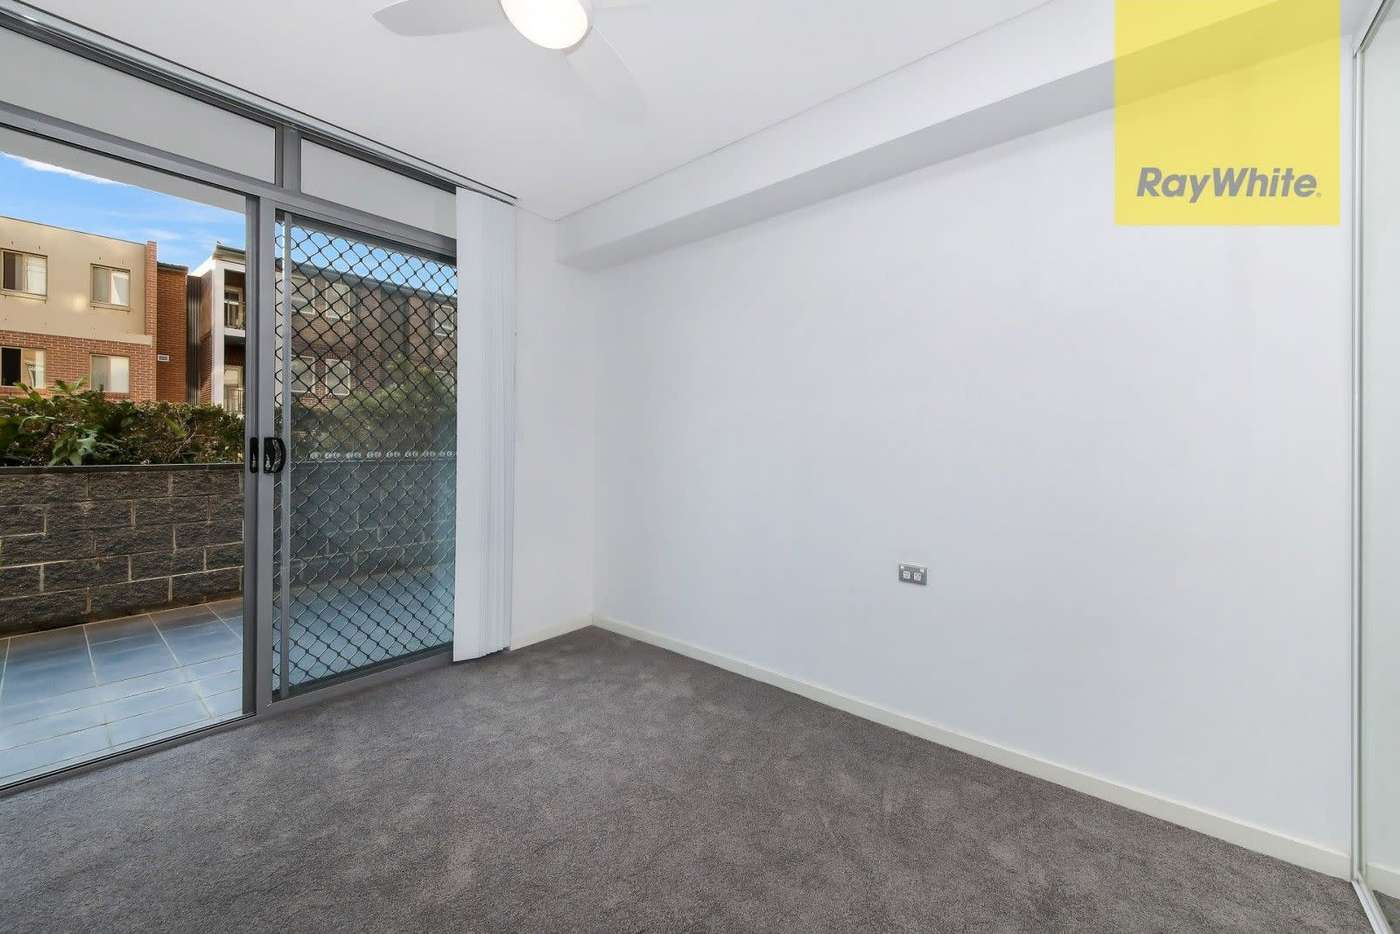 Sixth view of Homely apartment listing, 30/28 Brickworks Drive, Holroyd NSW 2142